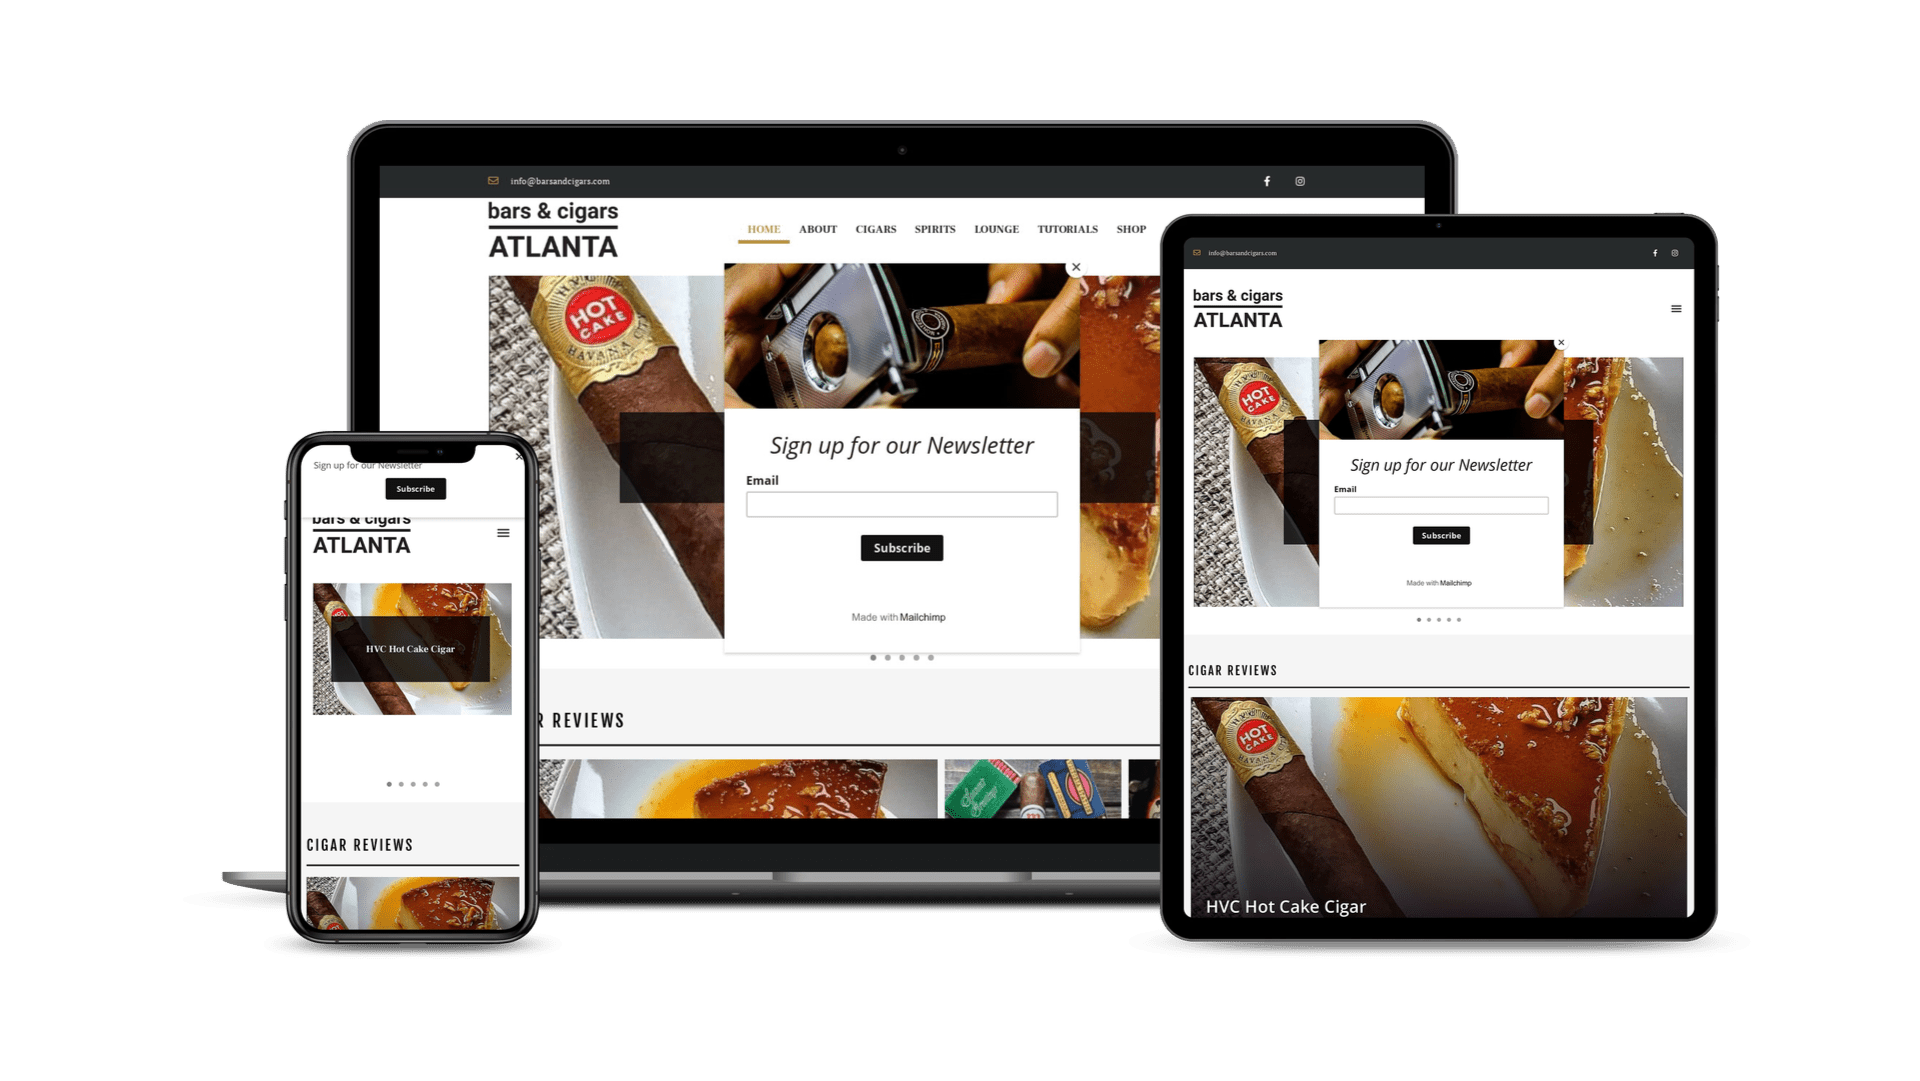 The Urban Geeks - Client - Bars and Cigars Website